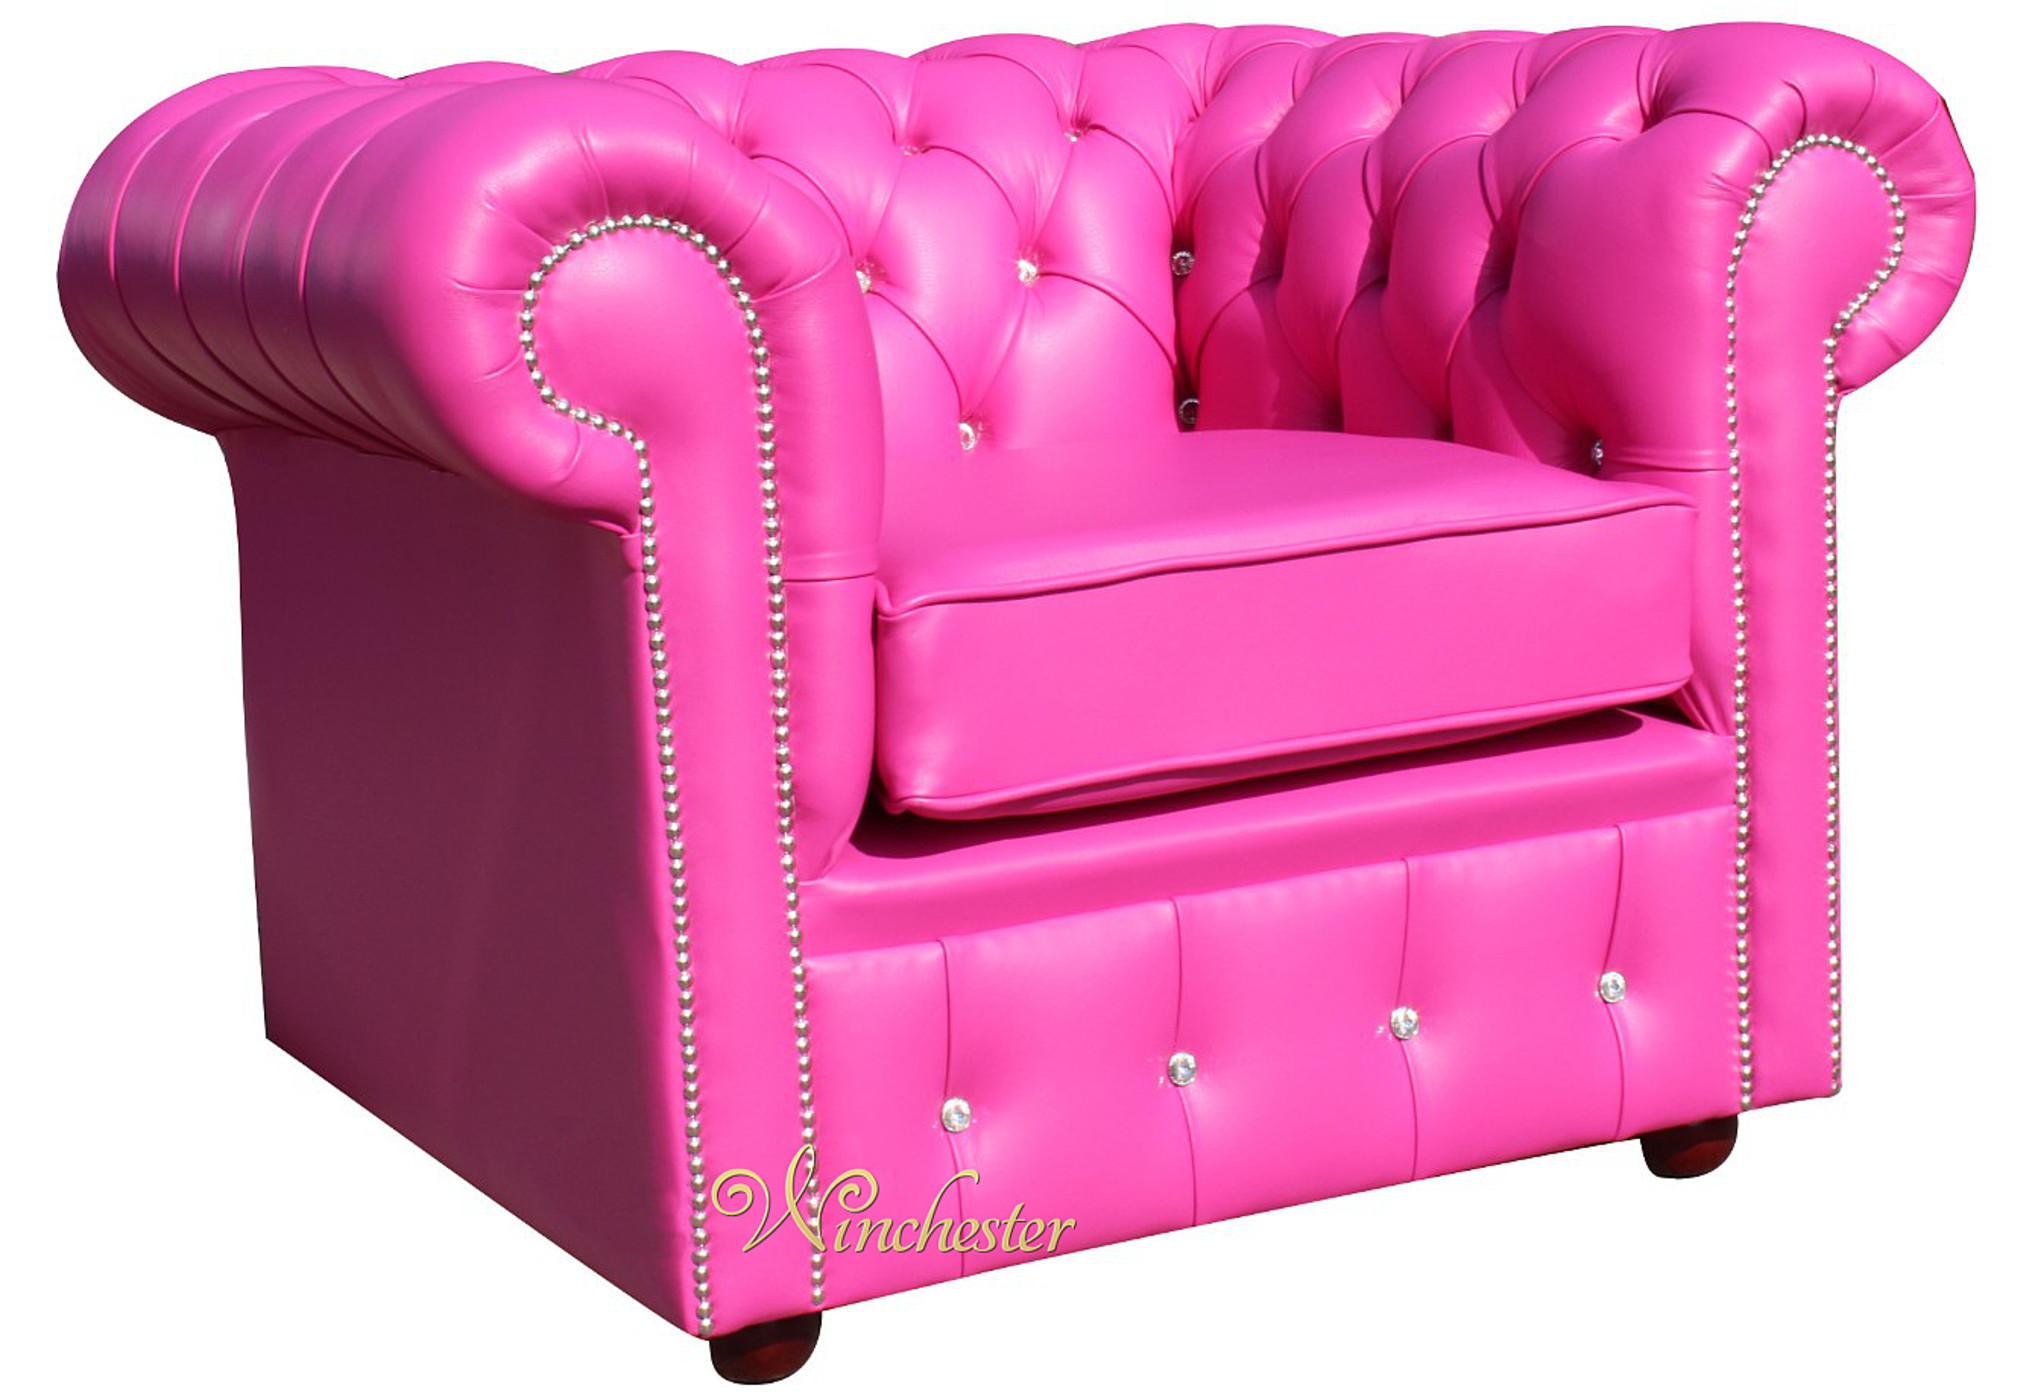 ... Chesterfield Swarovski Crystal Pink Leather Club Chair Wc